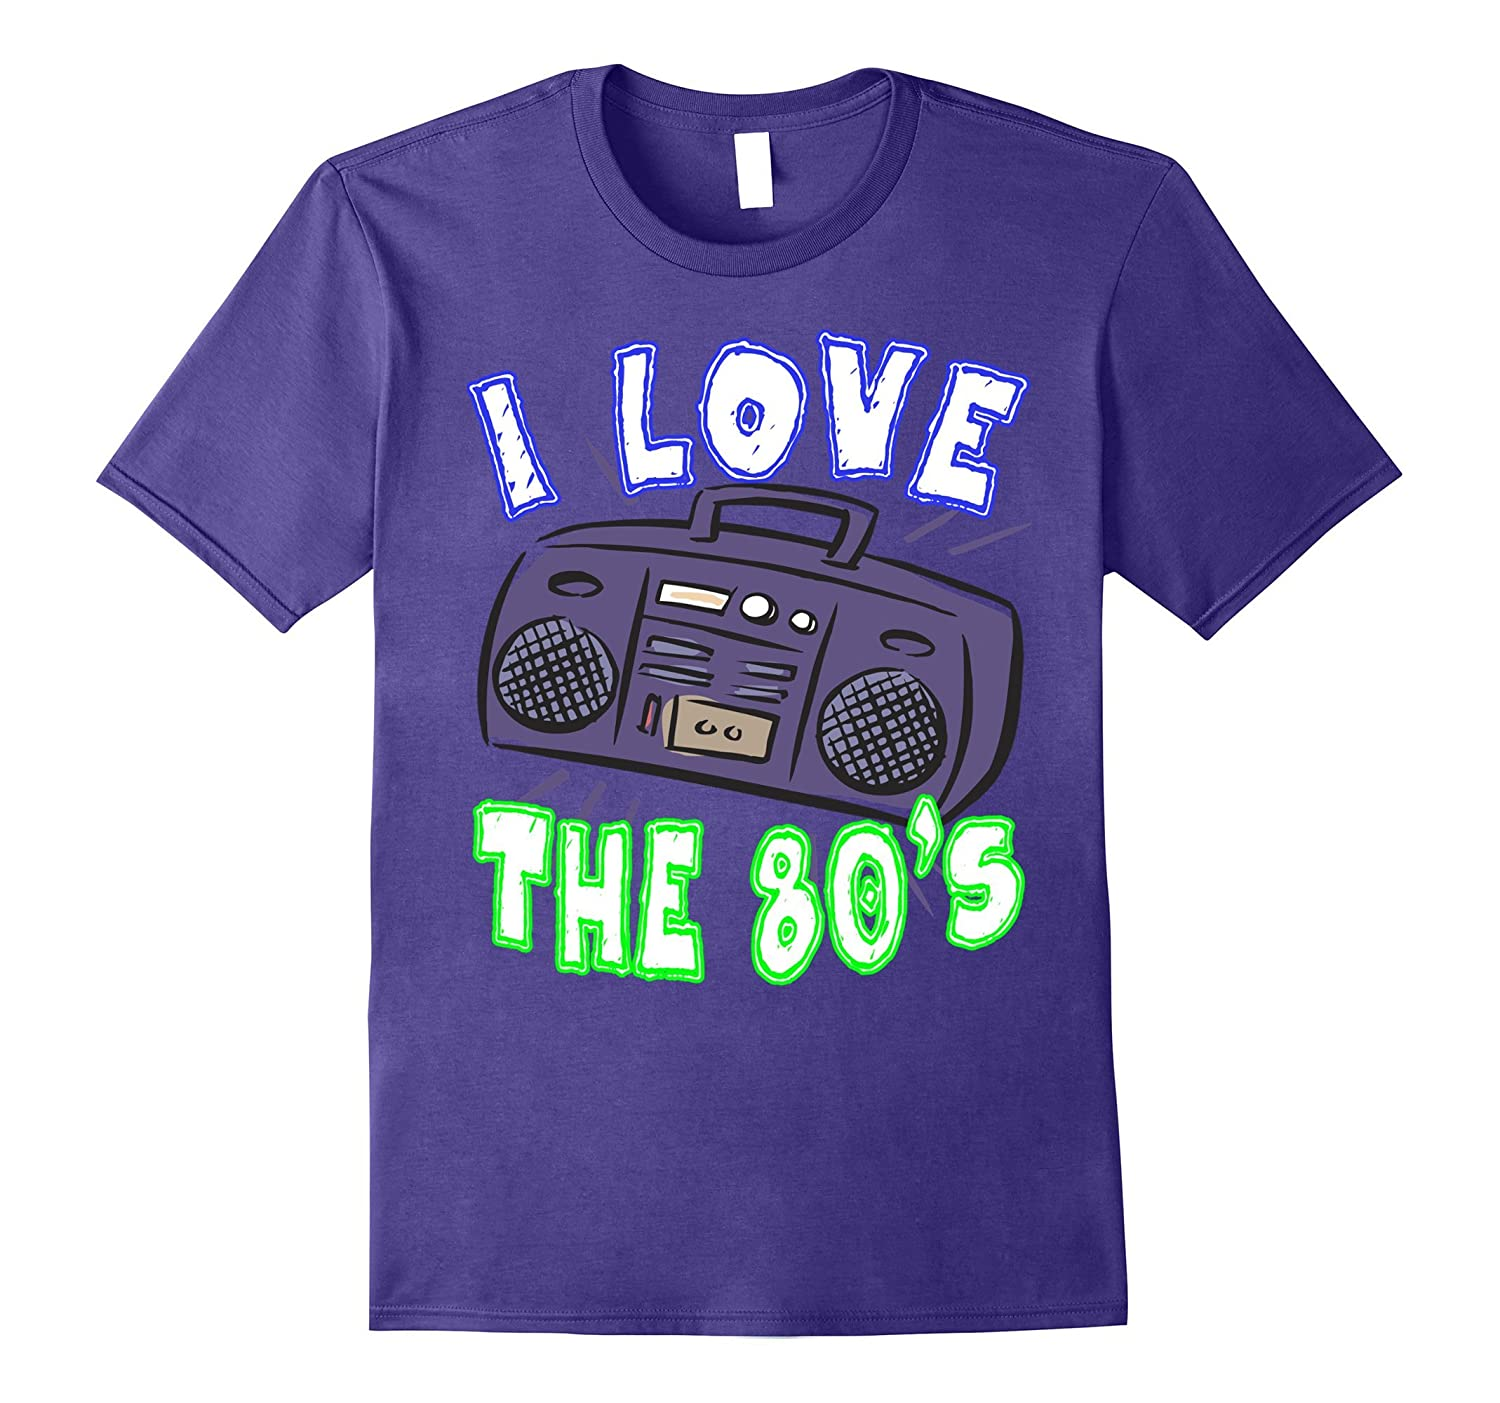 I Love The 80s T-Shirt Funny Women or Men's Gift Idea TShirt-FL